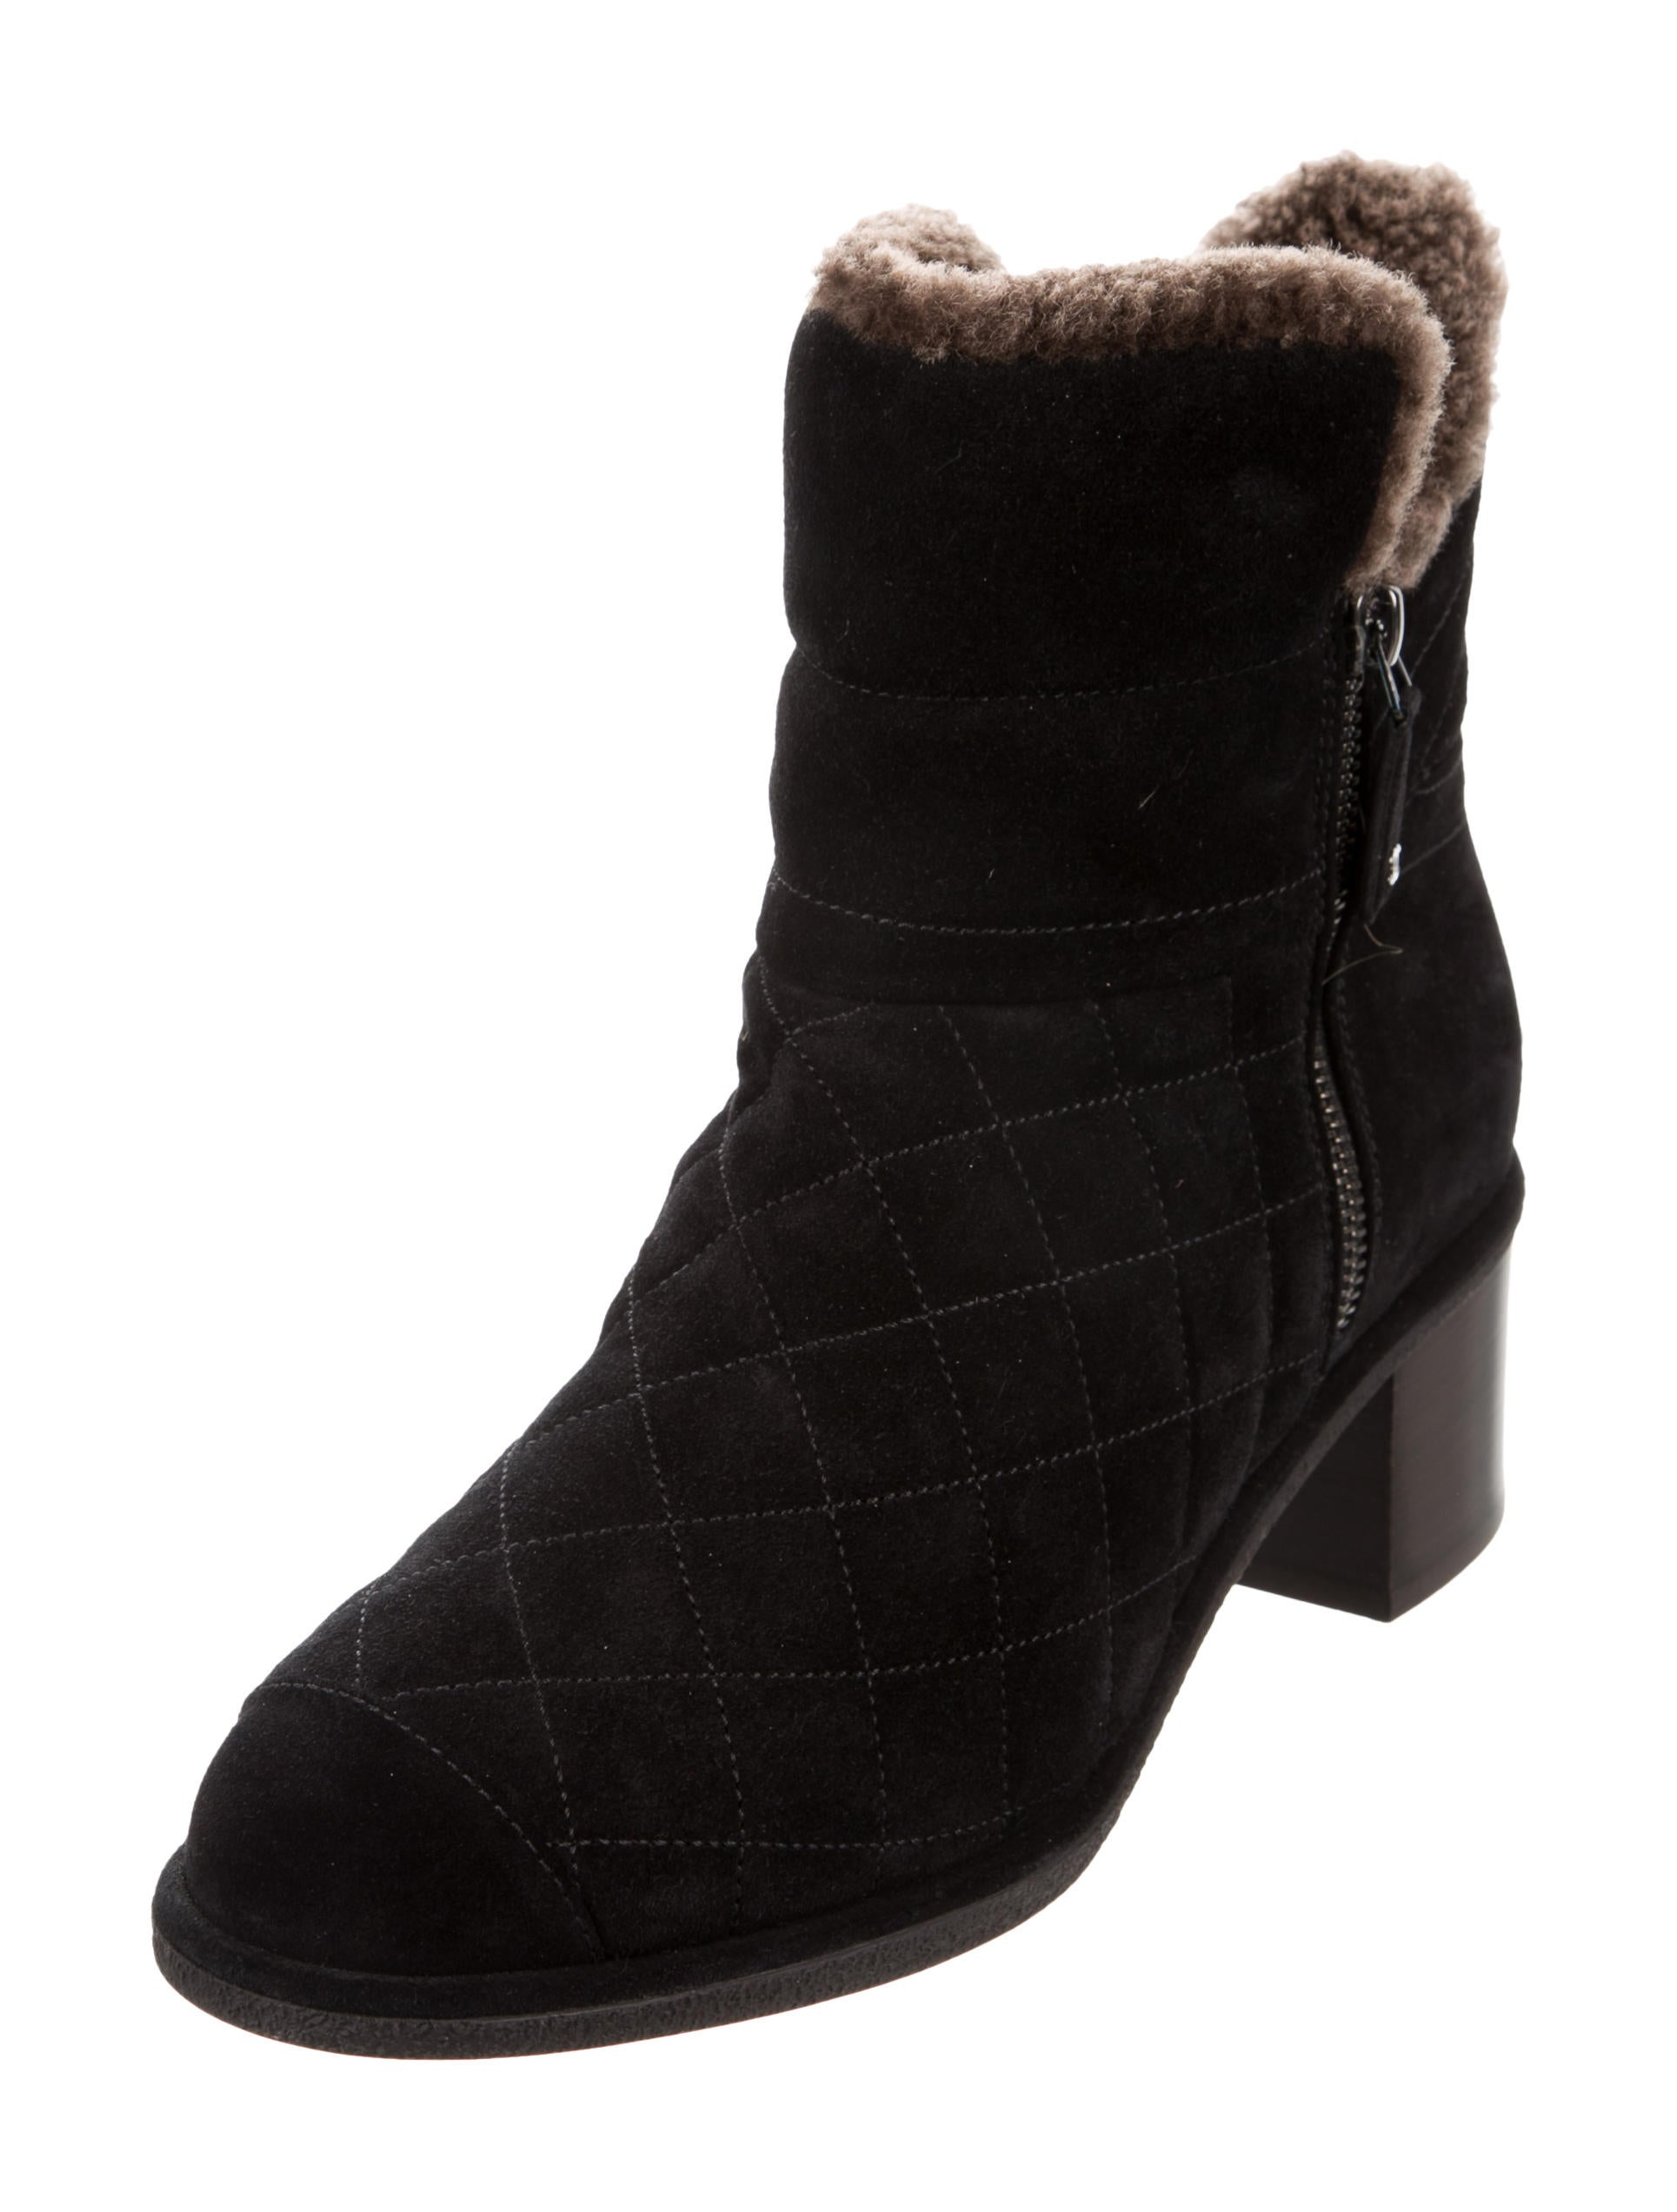 chanel quilted suede shearling lined ankle boots shoes